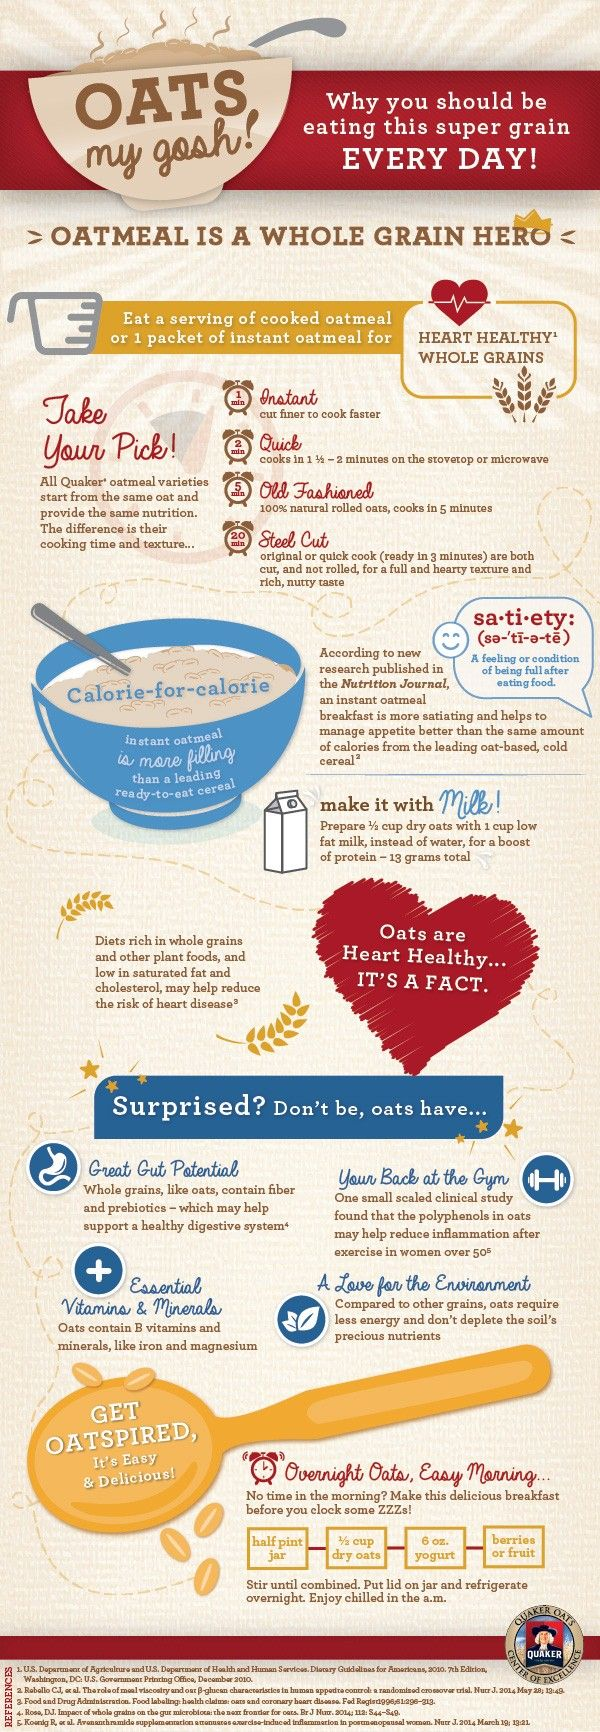 Why you should definitely be including oats in your daily diet! Great nutritional benefits.